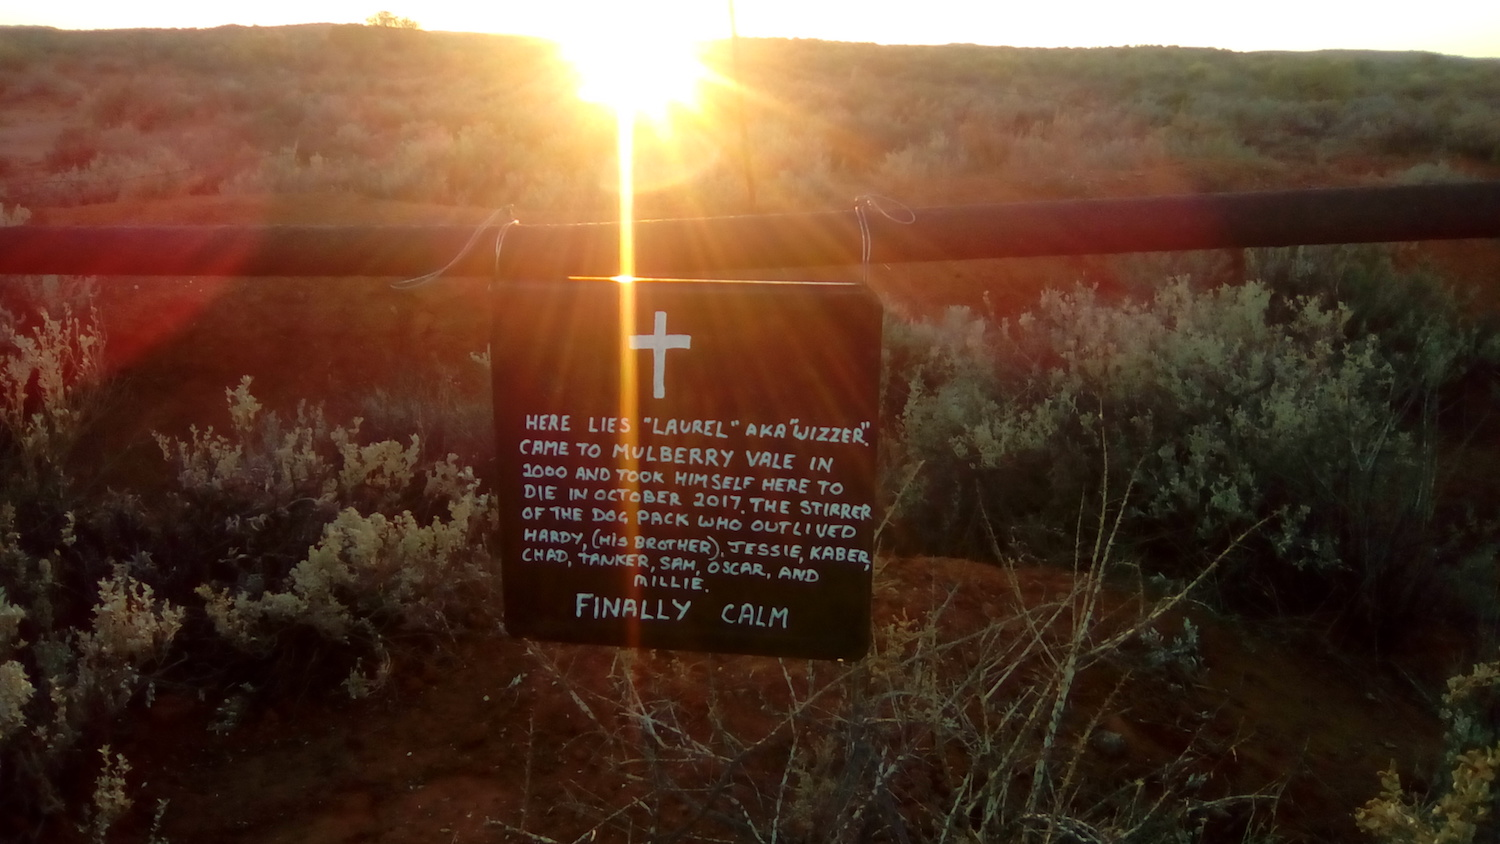 "The sun rises over a scrubby hill, and shows a sign hanging off a fence. The sign reads: ""Here lies 'Laurel' aka 'Wizzer'. Came to Mulberry Vale in 2000 and took himself here to dies in October 2017. The stirrer of the dog pack who outlived Hardy (his brother), Jessie, Kaber, Chad, Tanker, Sam, Oscar, and Millie. Finally calm."""